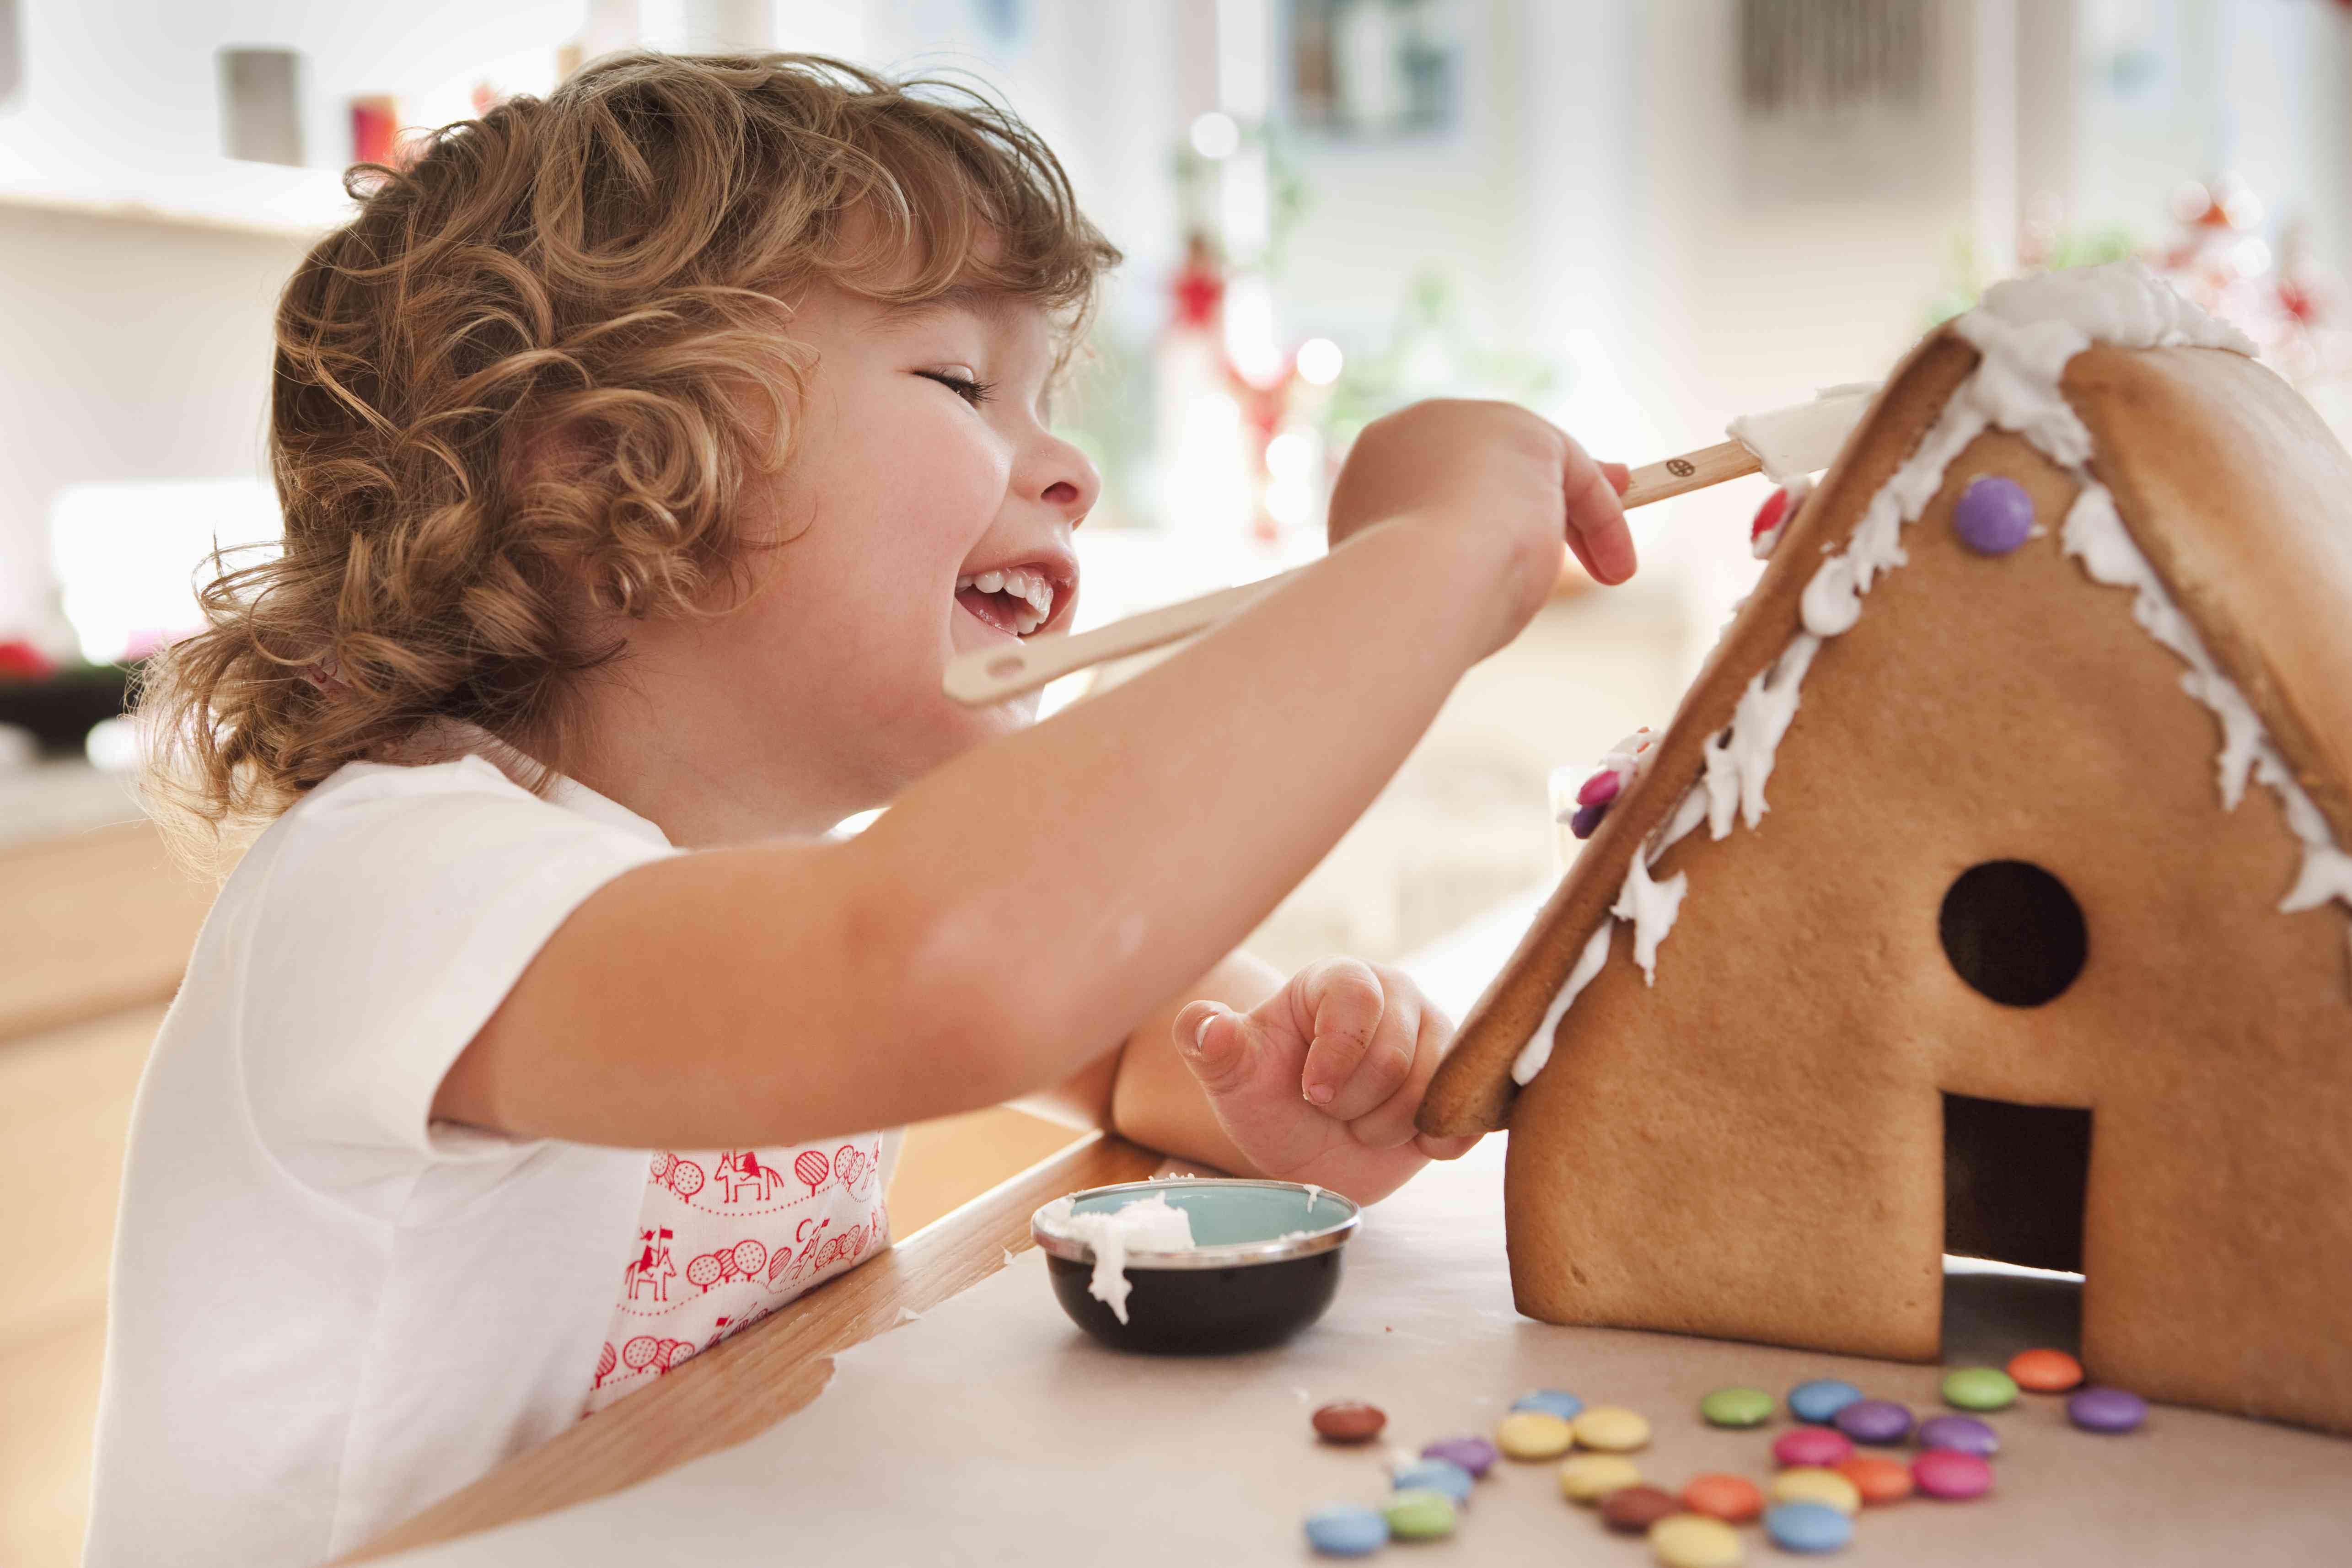 Young child decorating a gingerbread house